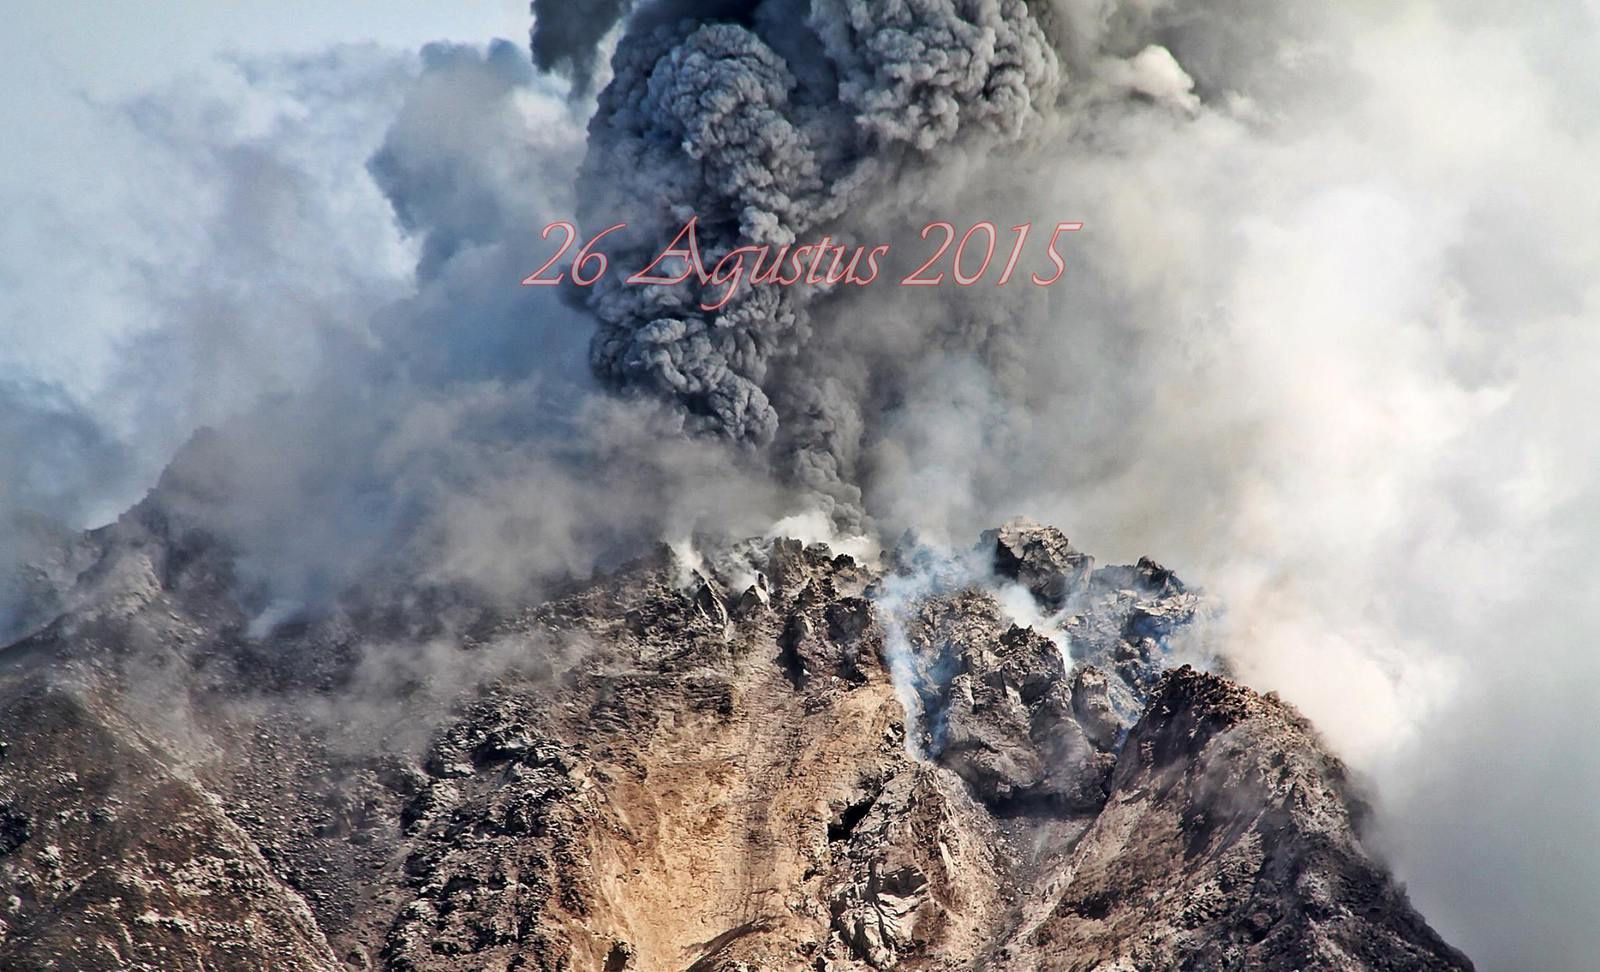 Explosion at the top of the Sinabung 08/26/2015 - photo Firdaus Firdaus Surbakti / Komunitas Beidar Sinabung